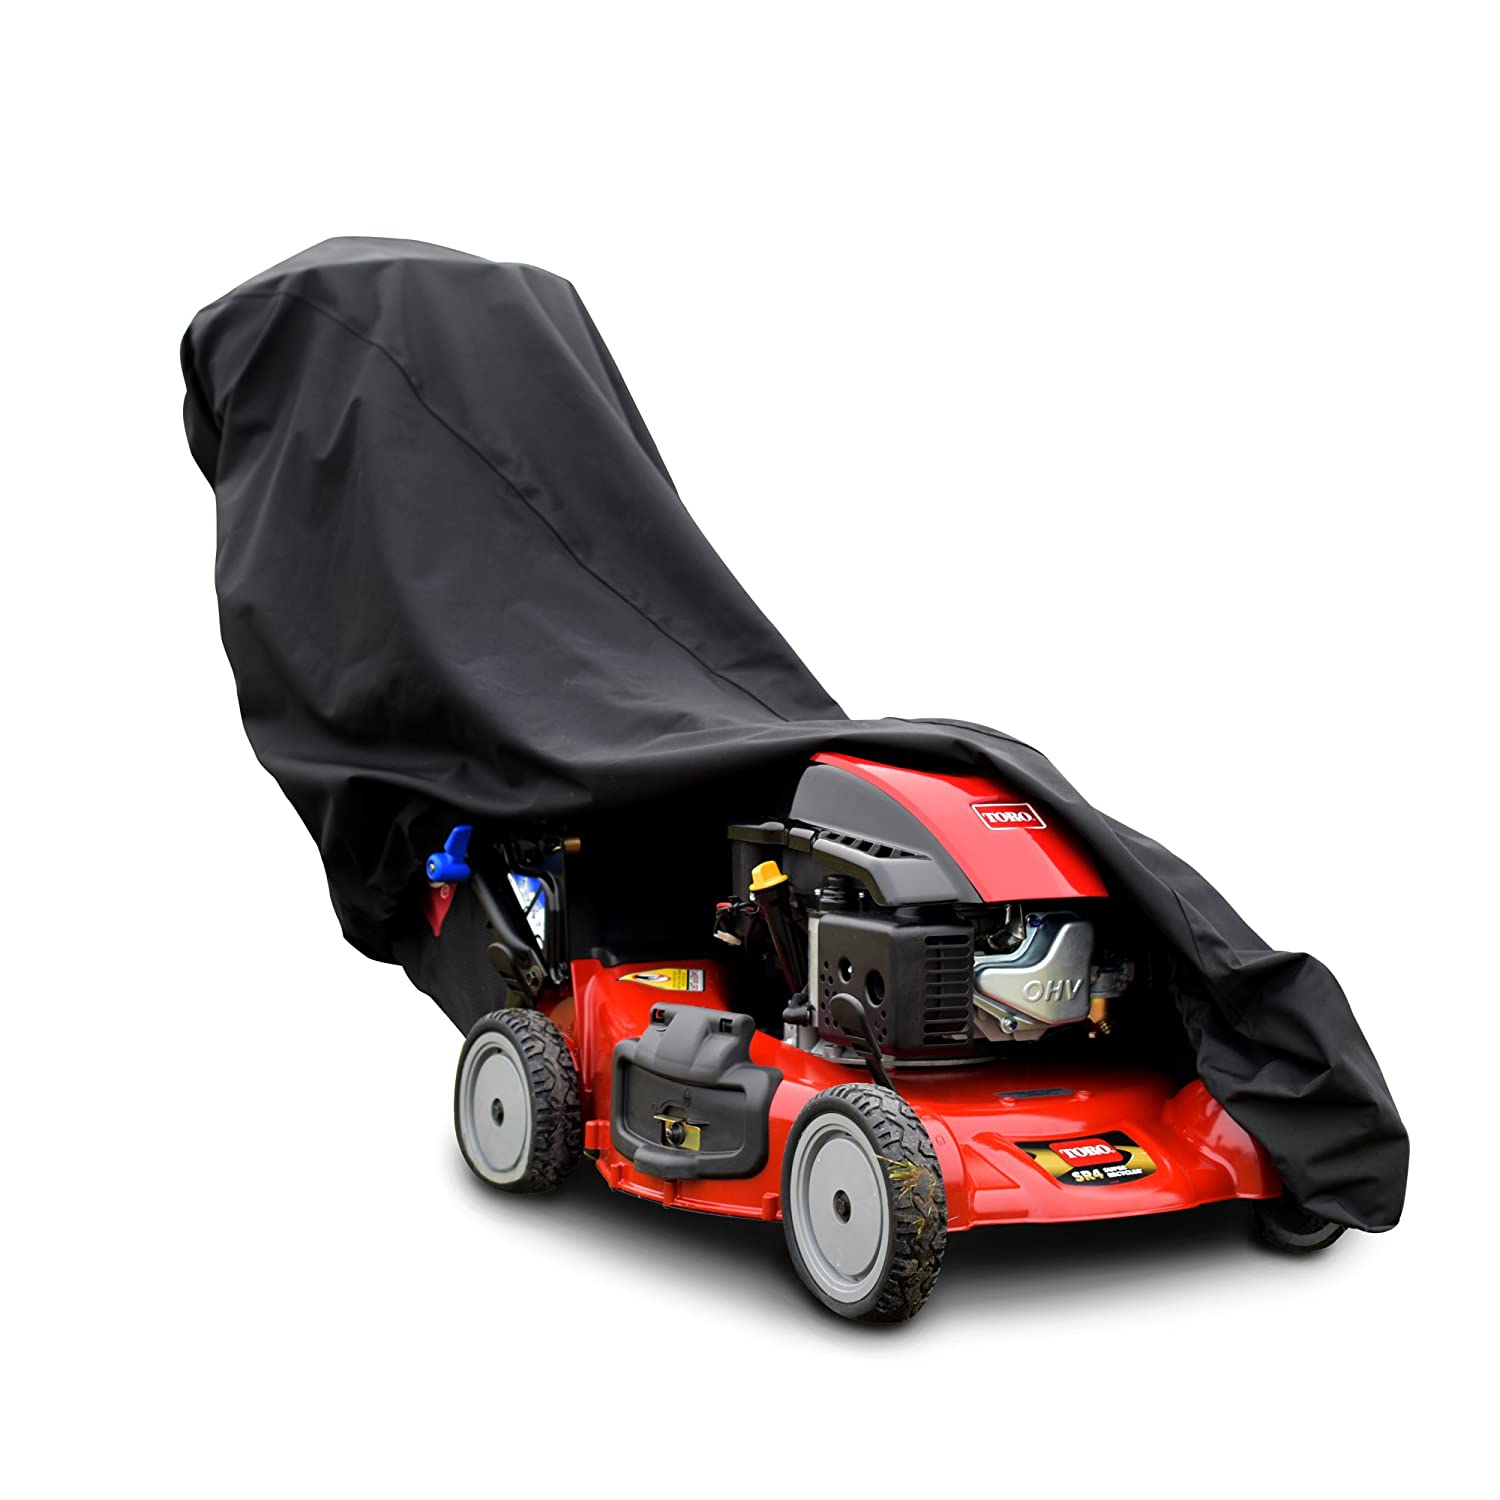 Budge TPLM1 Lawn Mower Cover, Black Budge Industries